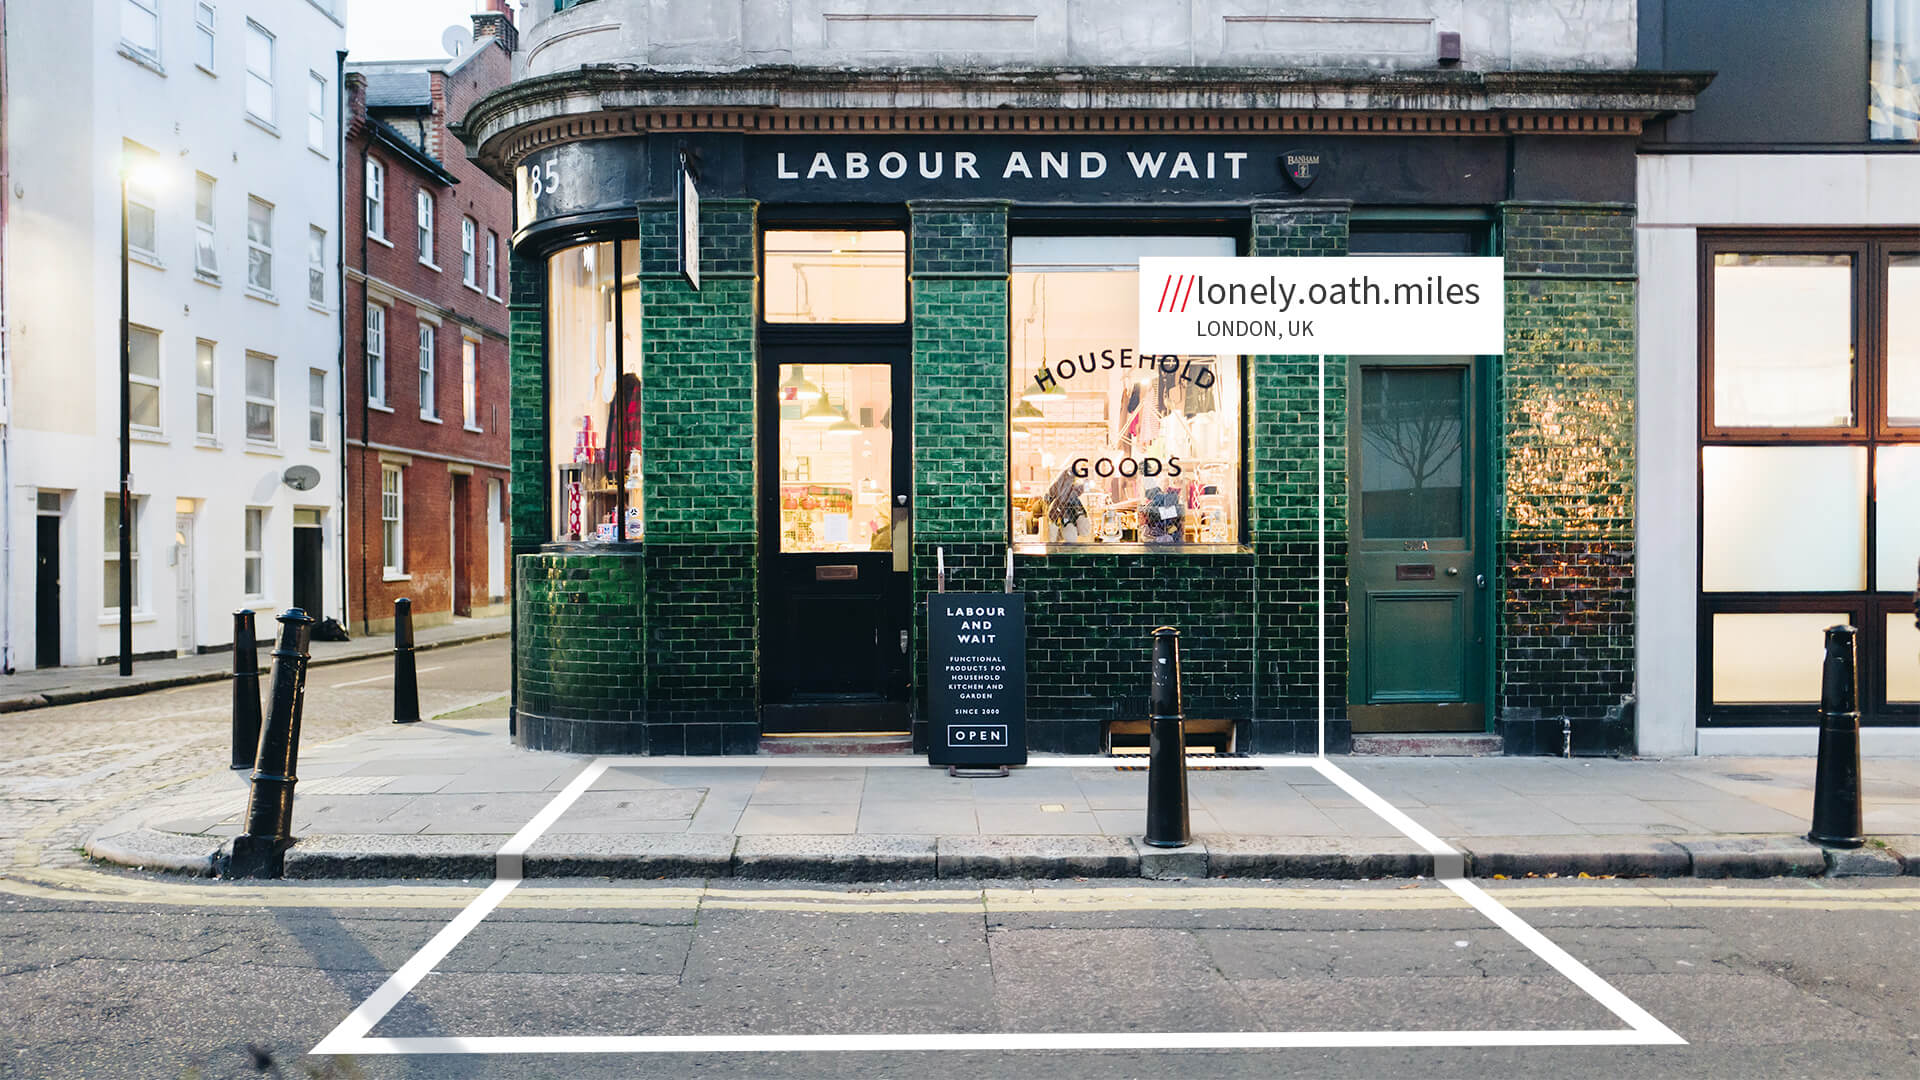 London shop with what3words address